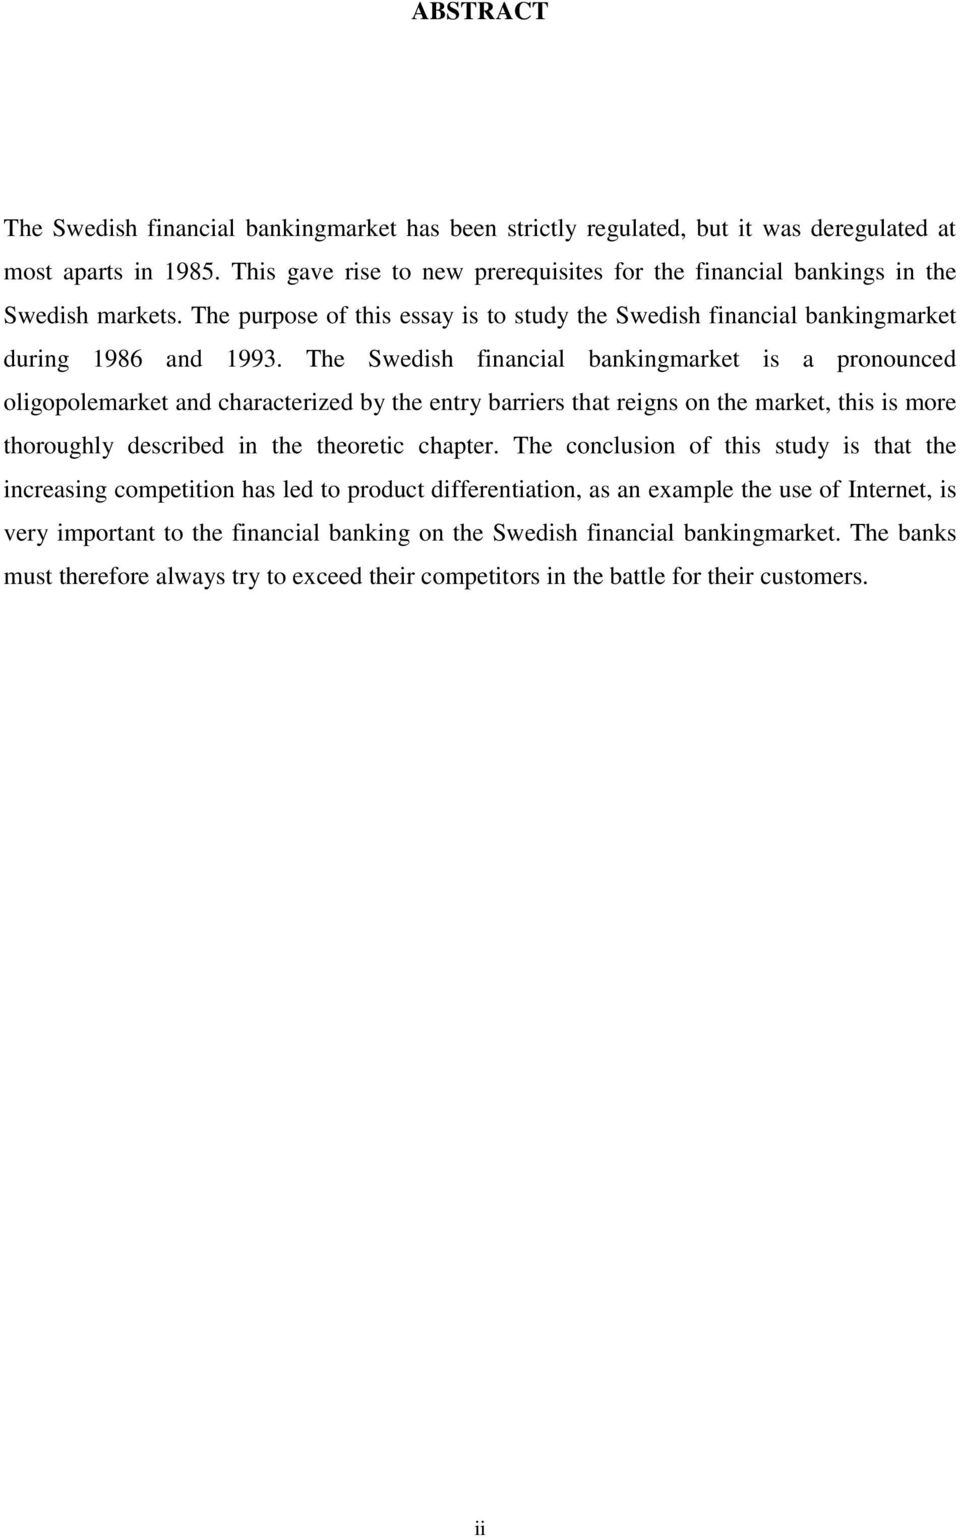 The Swedish financial bankingmarket is a pronounced oligopolemarket and characterized by the entry barriers that reigns on the market, this is more thoroughly described in the theoretic chapter.